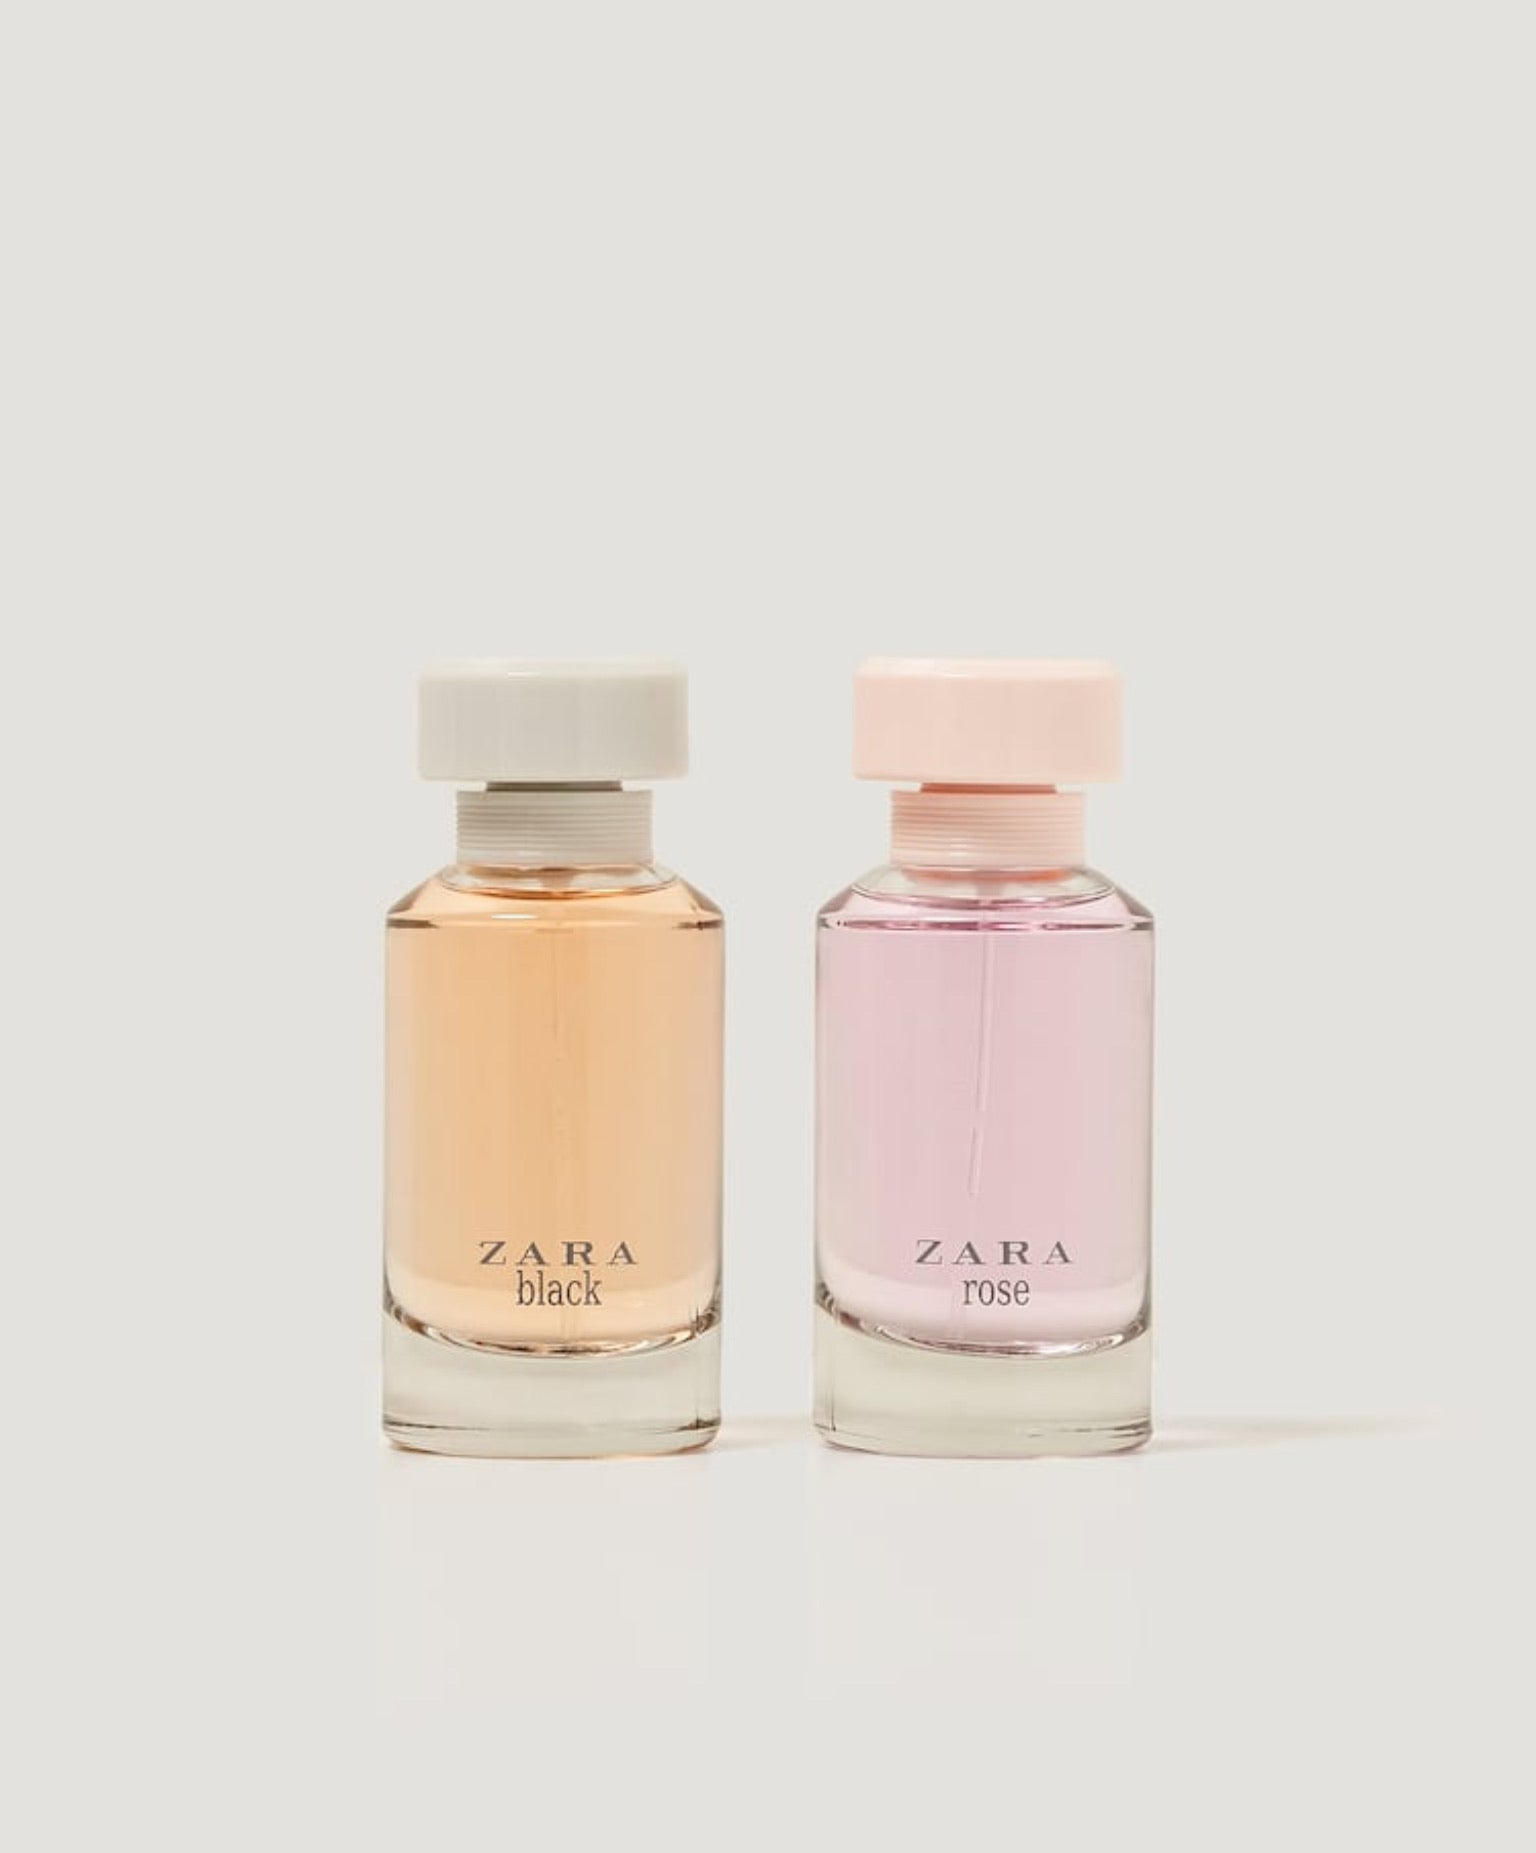 ZARA BLACK + ROSE TINTED LEATHER PERFUME 100ML X 2